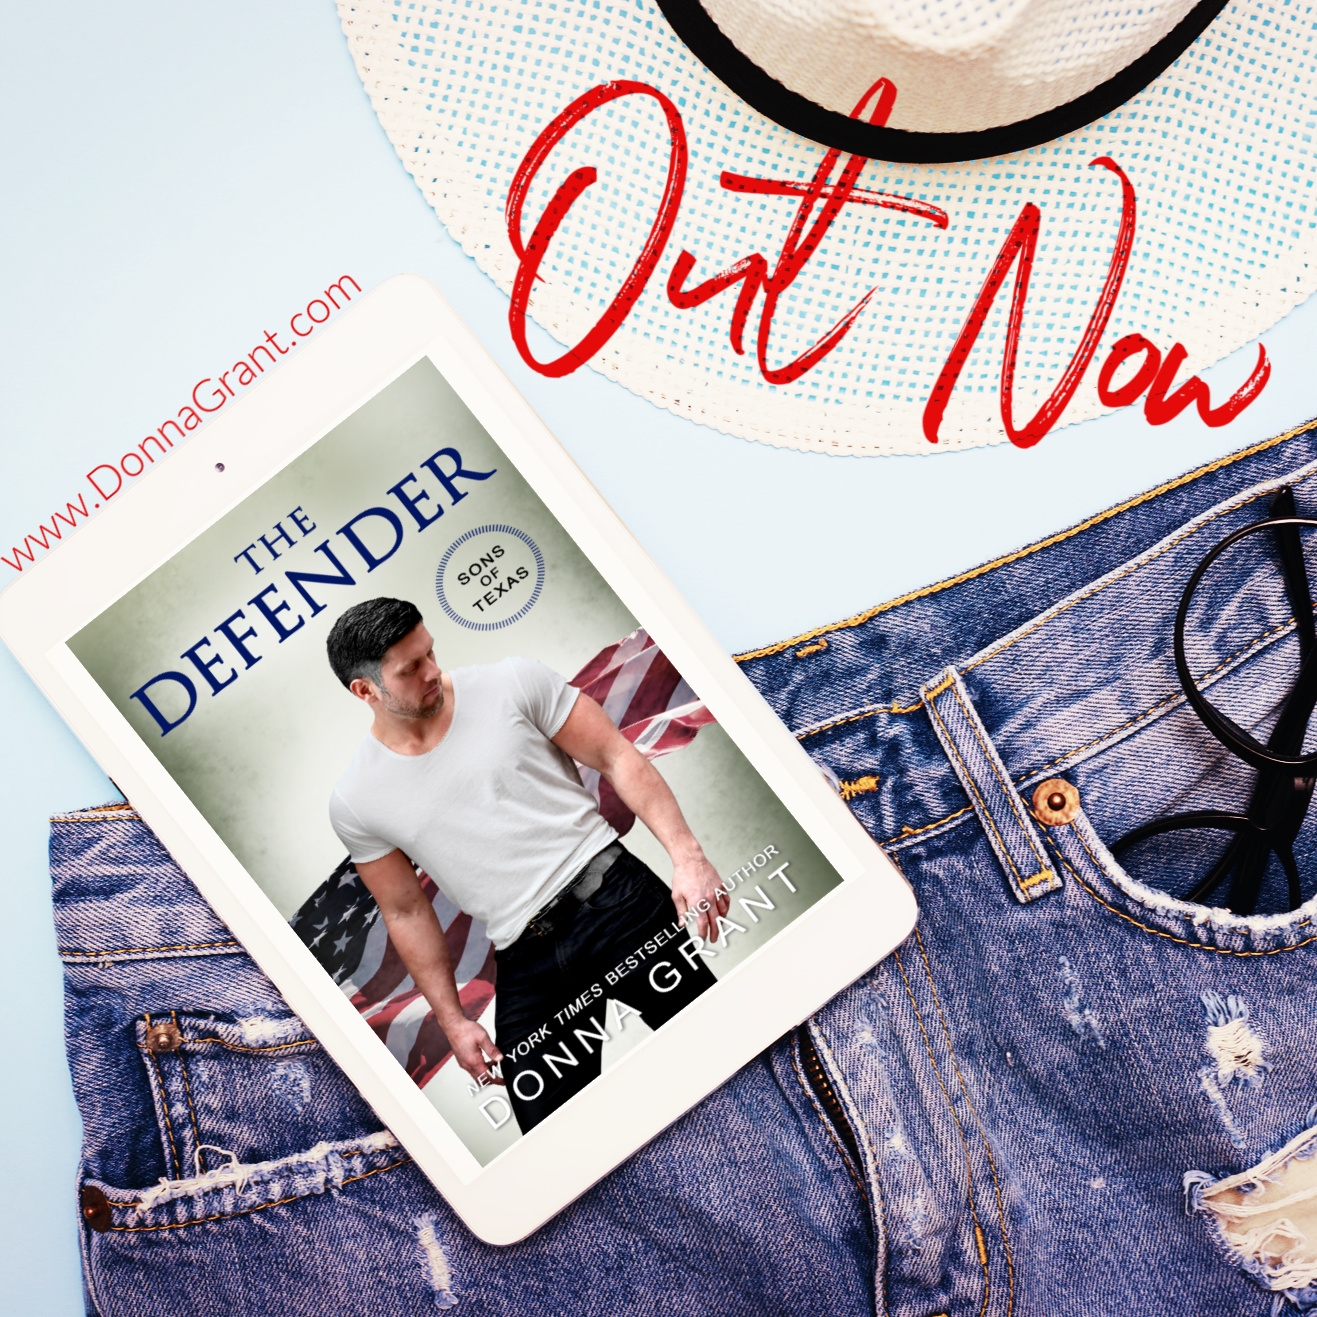 THE DEFENDER by Donna Grant – Available Now